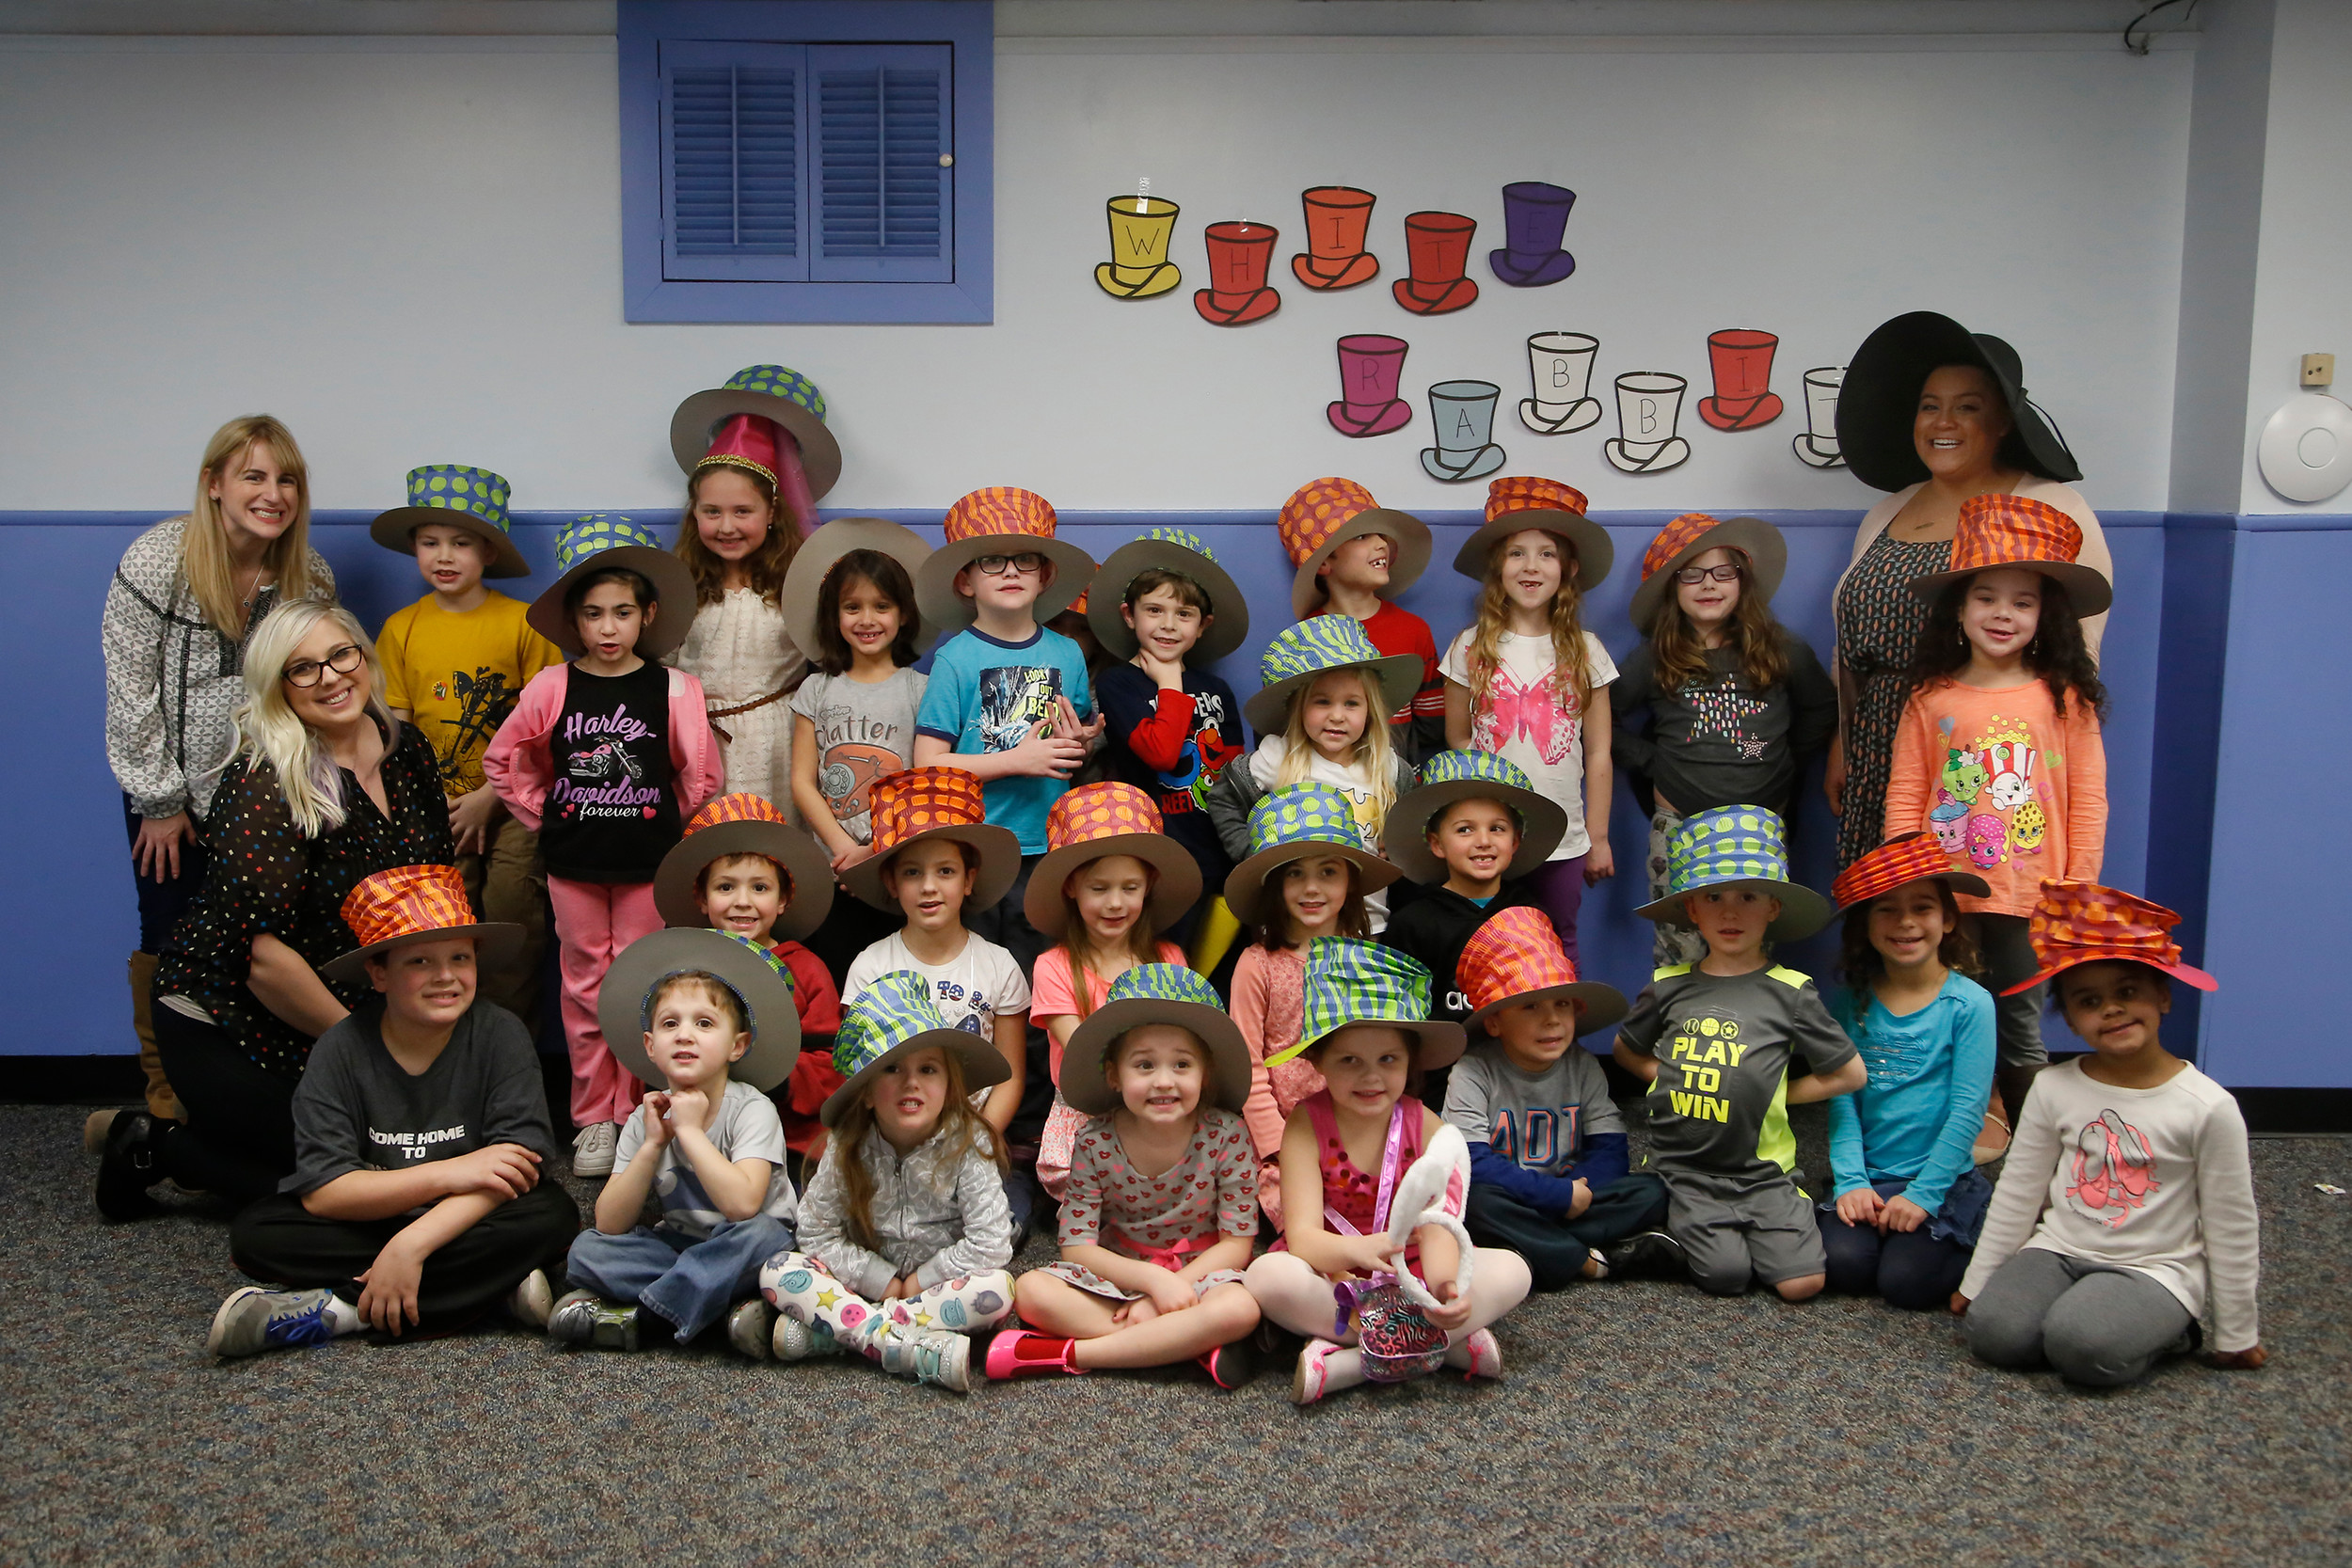 Dozens of youngsters wore wacky hats to the 20th annual Mad Hatter's Tea Party at the Seaford Public Library last month.